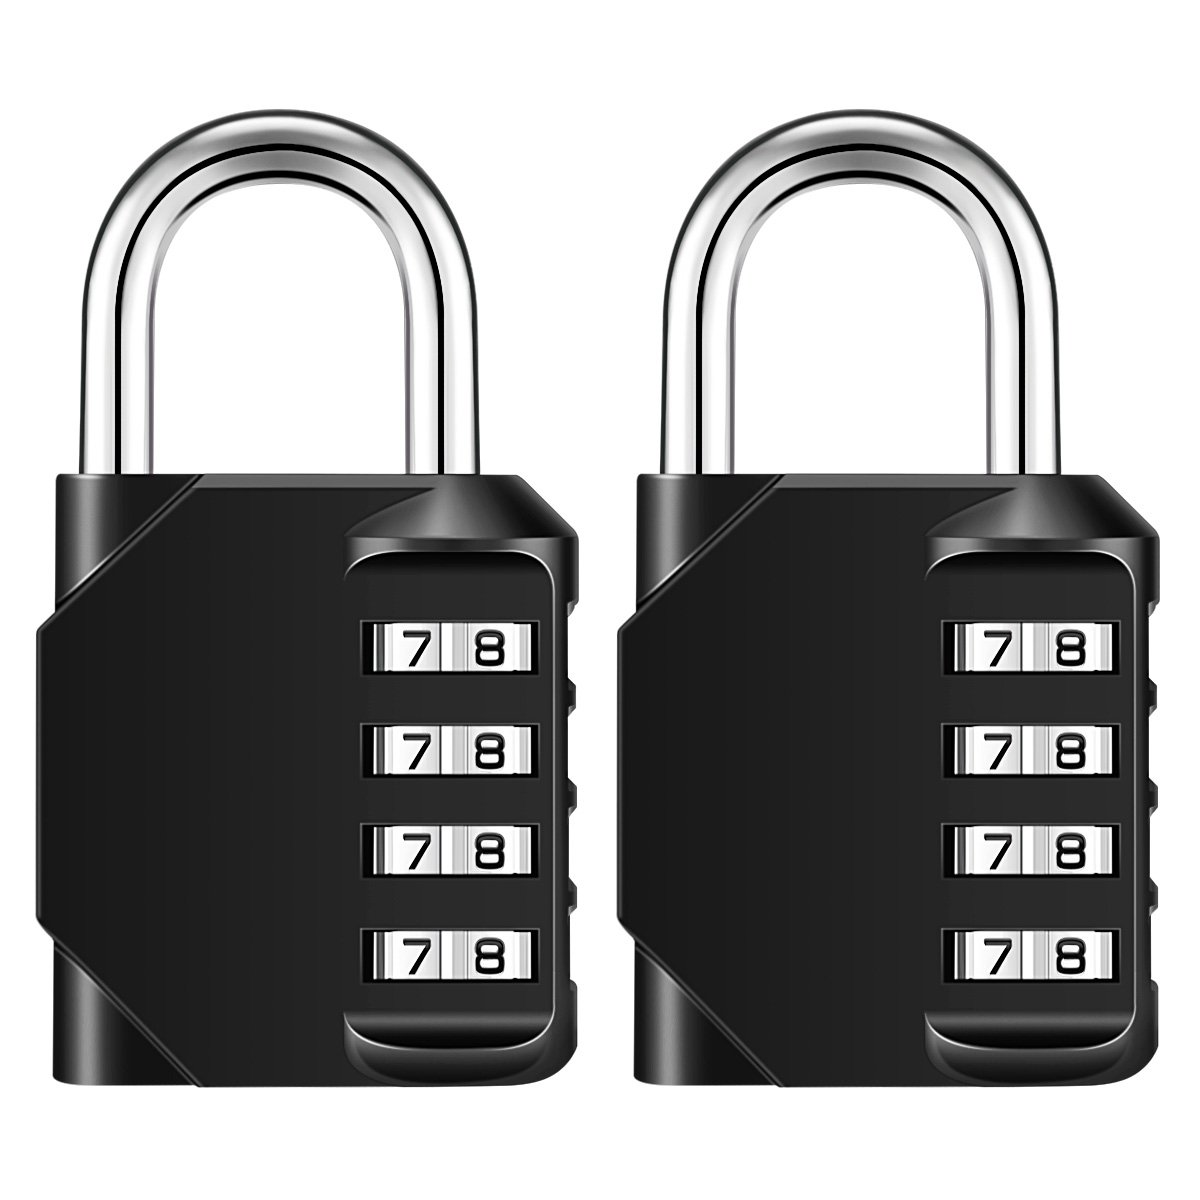 KeeKit Combination Lock, 4 Digit Combination Padlock, Weatherproof Outdoor Gate Lock, Locker Lock for School, Gym, Employee, Combination Lock for Case, Toolbox, Hasp Cabinet and Storage, 2 Pack